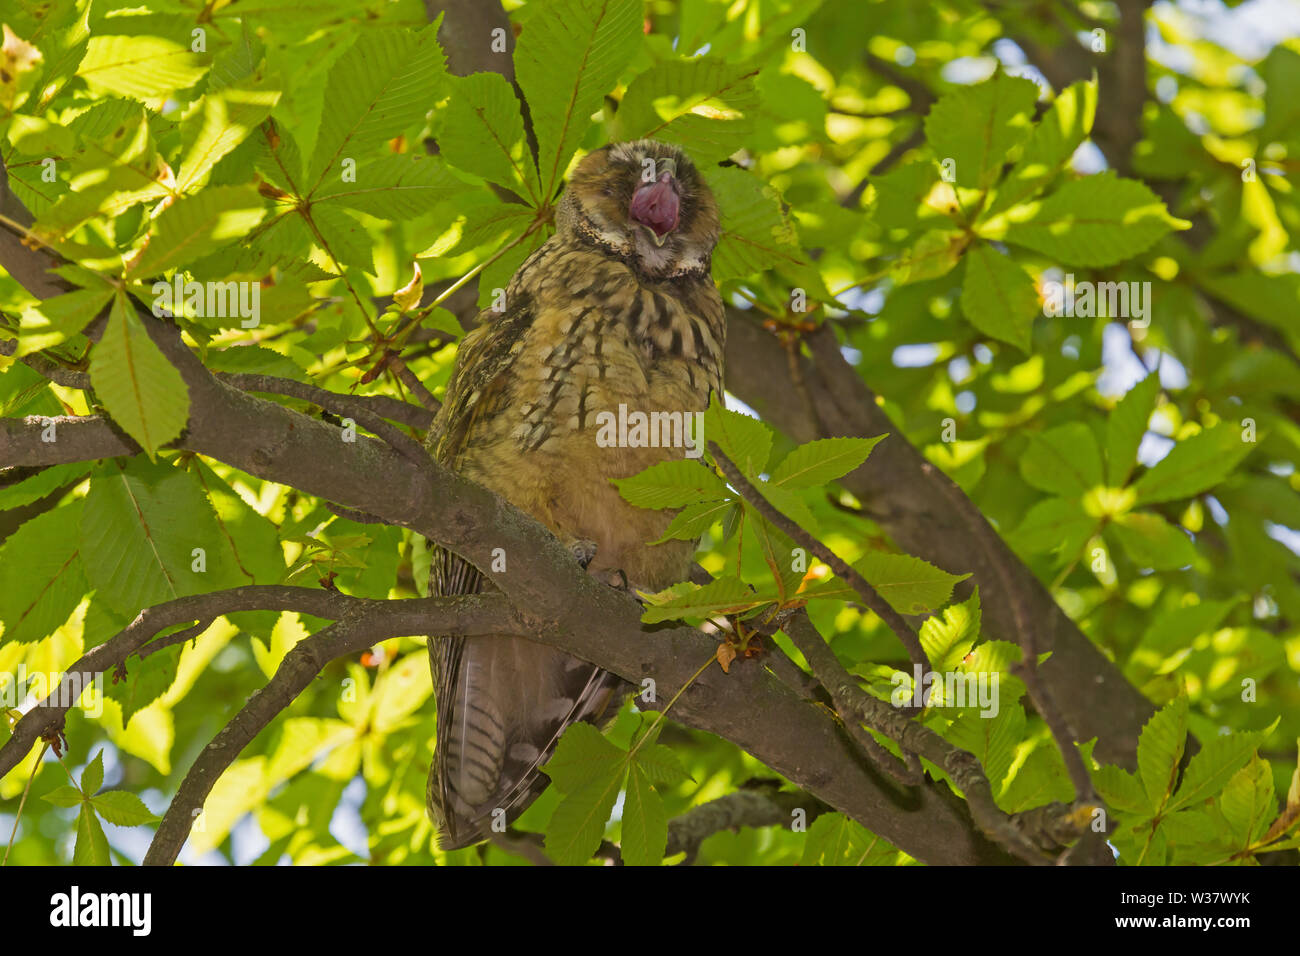 close up of yawning owl on branch of chestnut tree - Stock Image